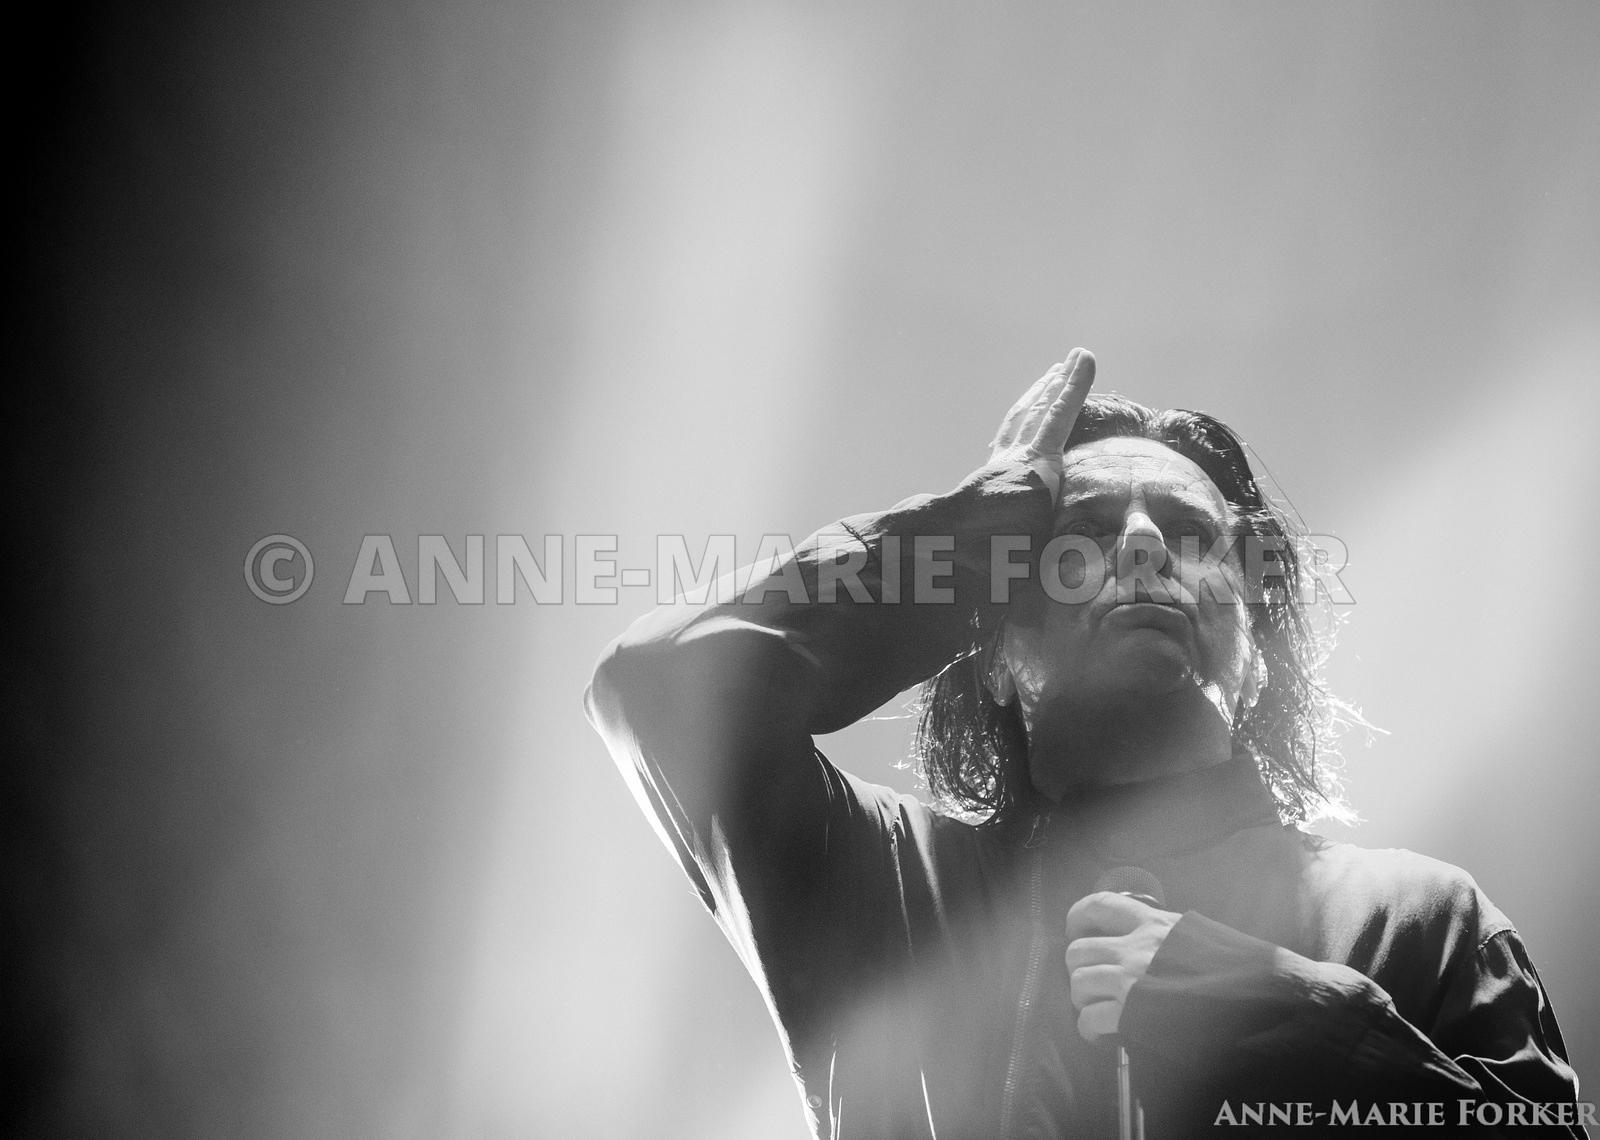 Marillion_Poland_FOR_PRINT_5_x_7_AM_Forker-8018